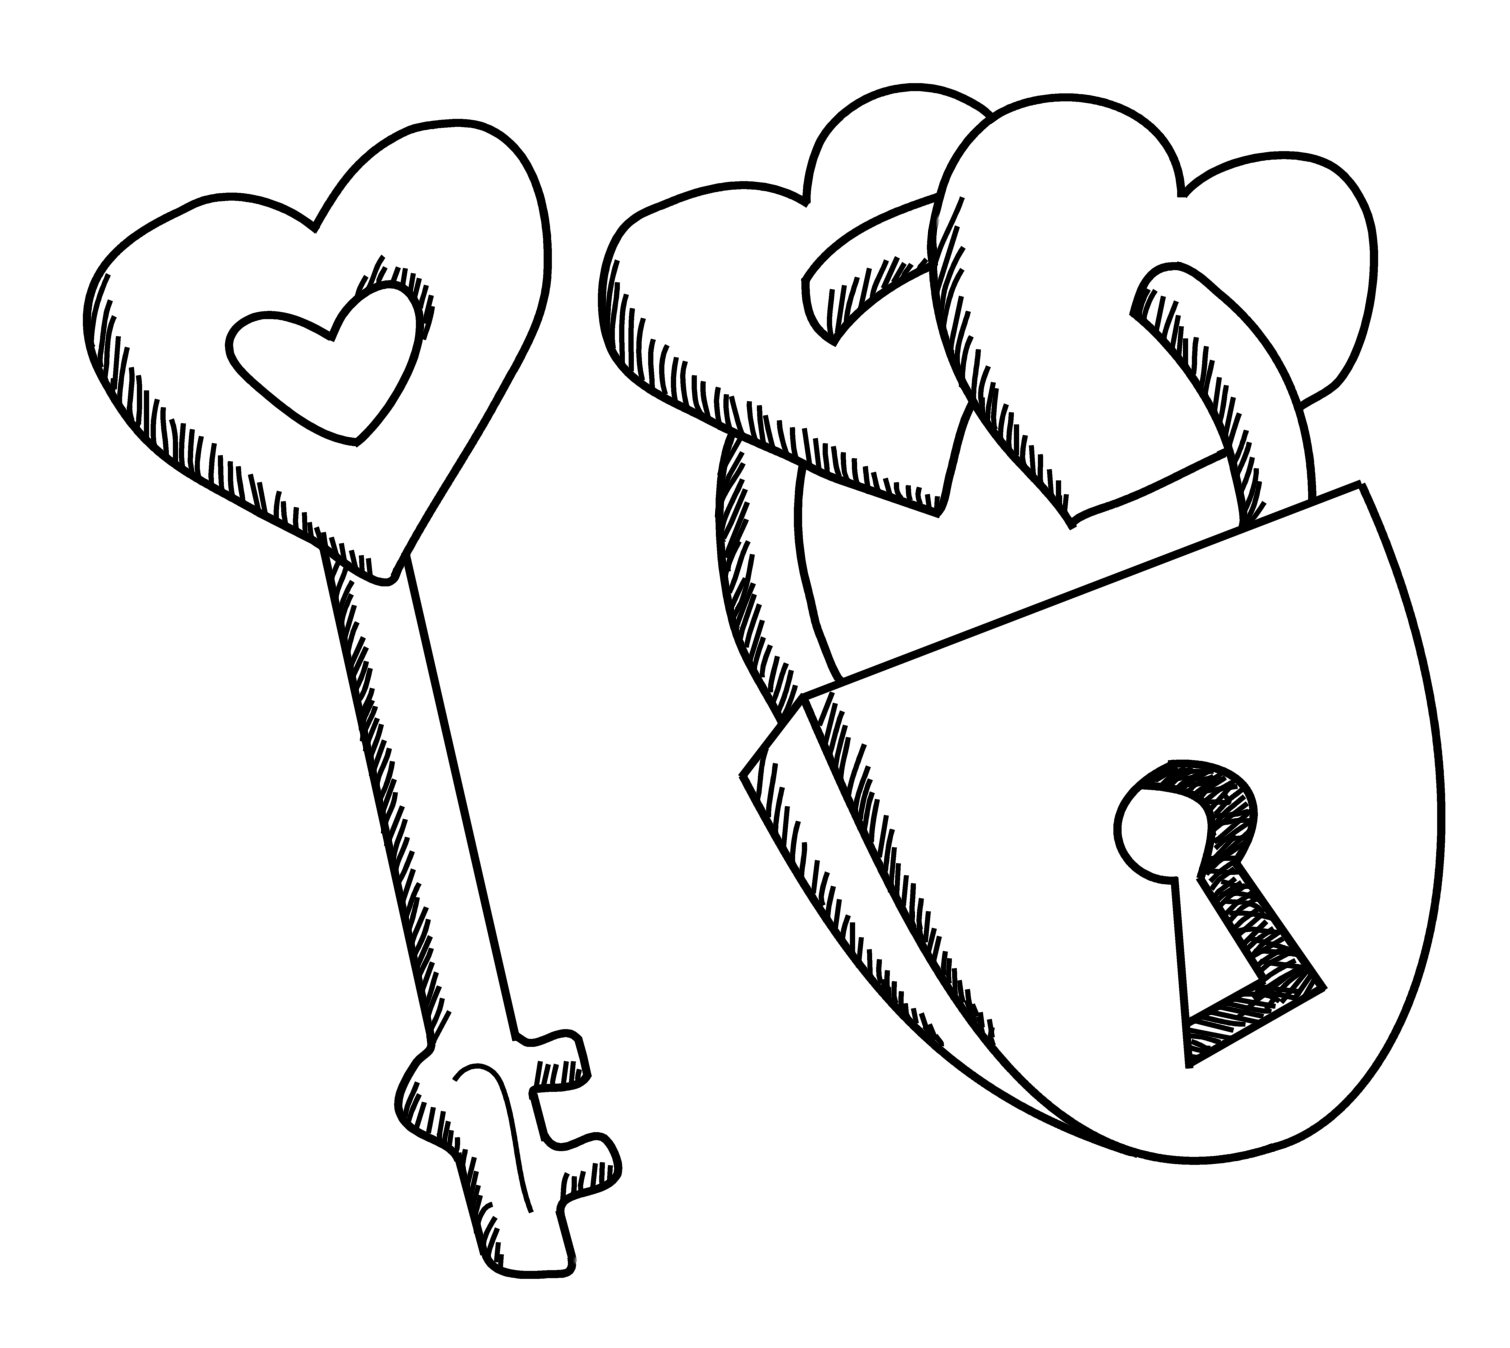 Drawings Of Hearts With Locks Scribbles Designs Challenge Blog